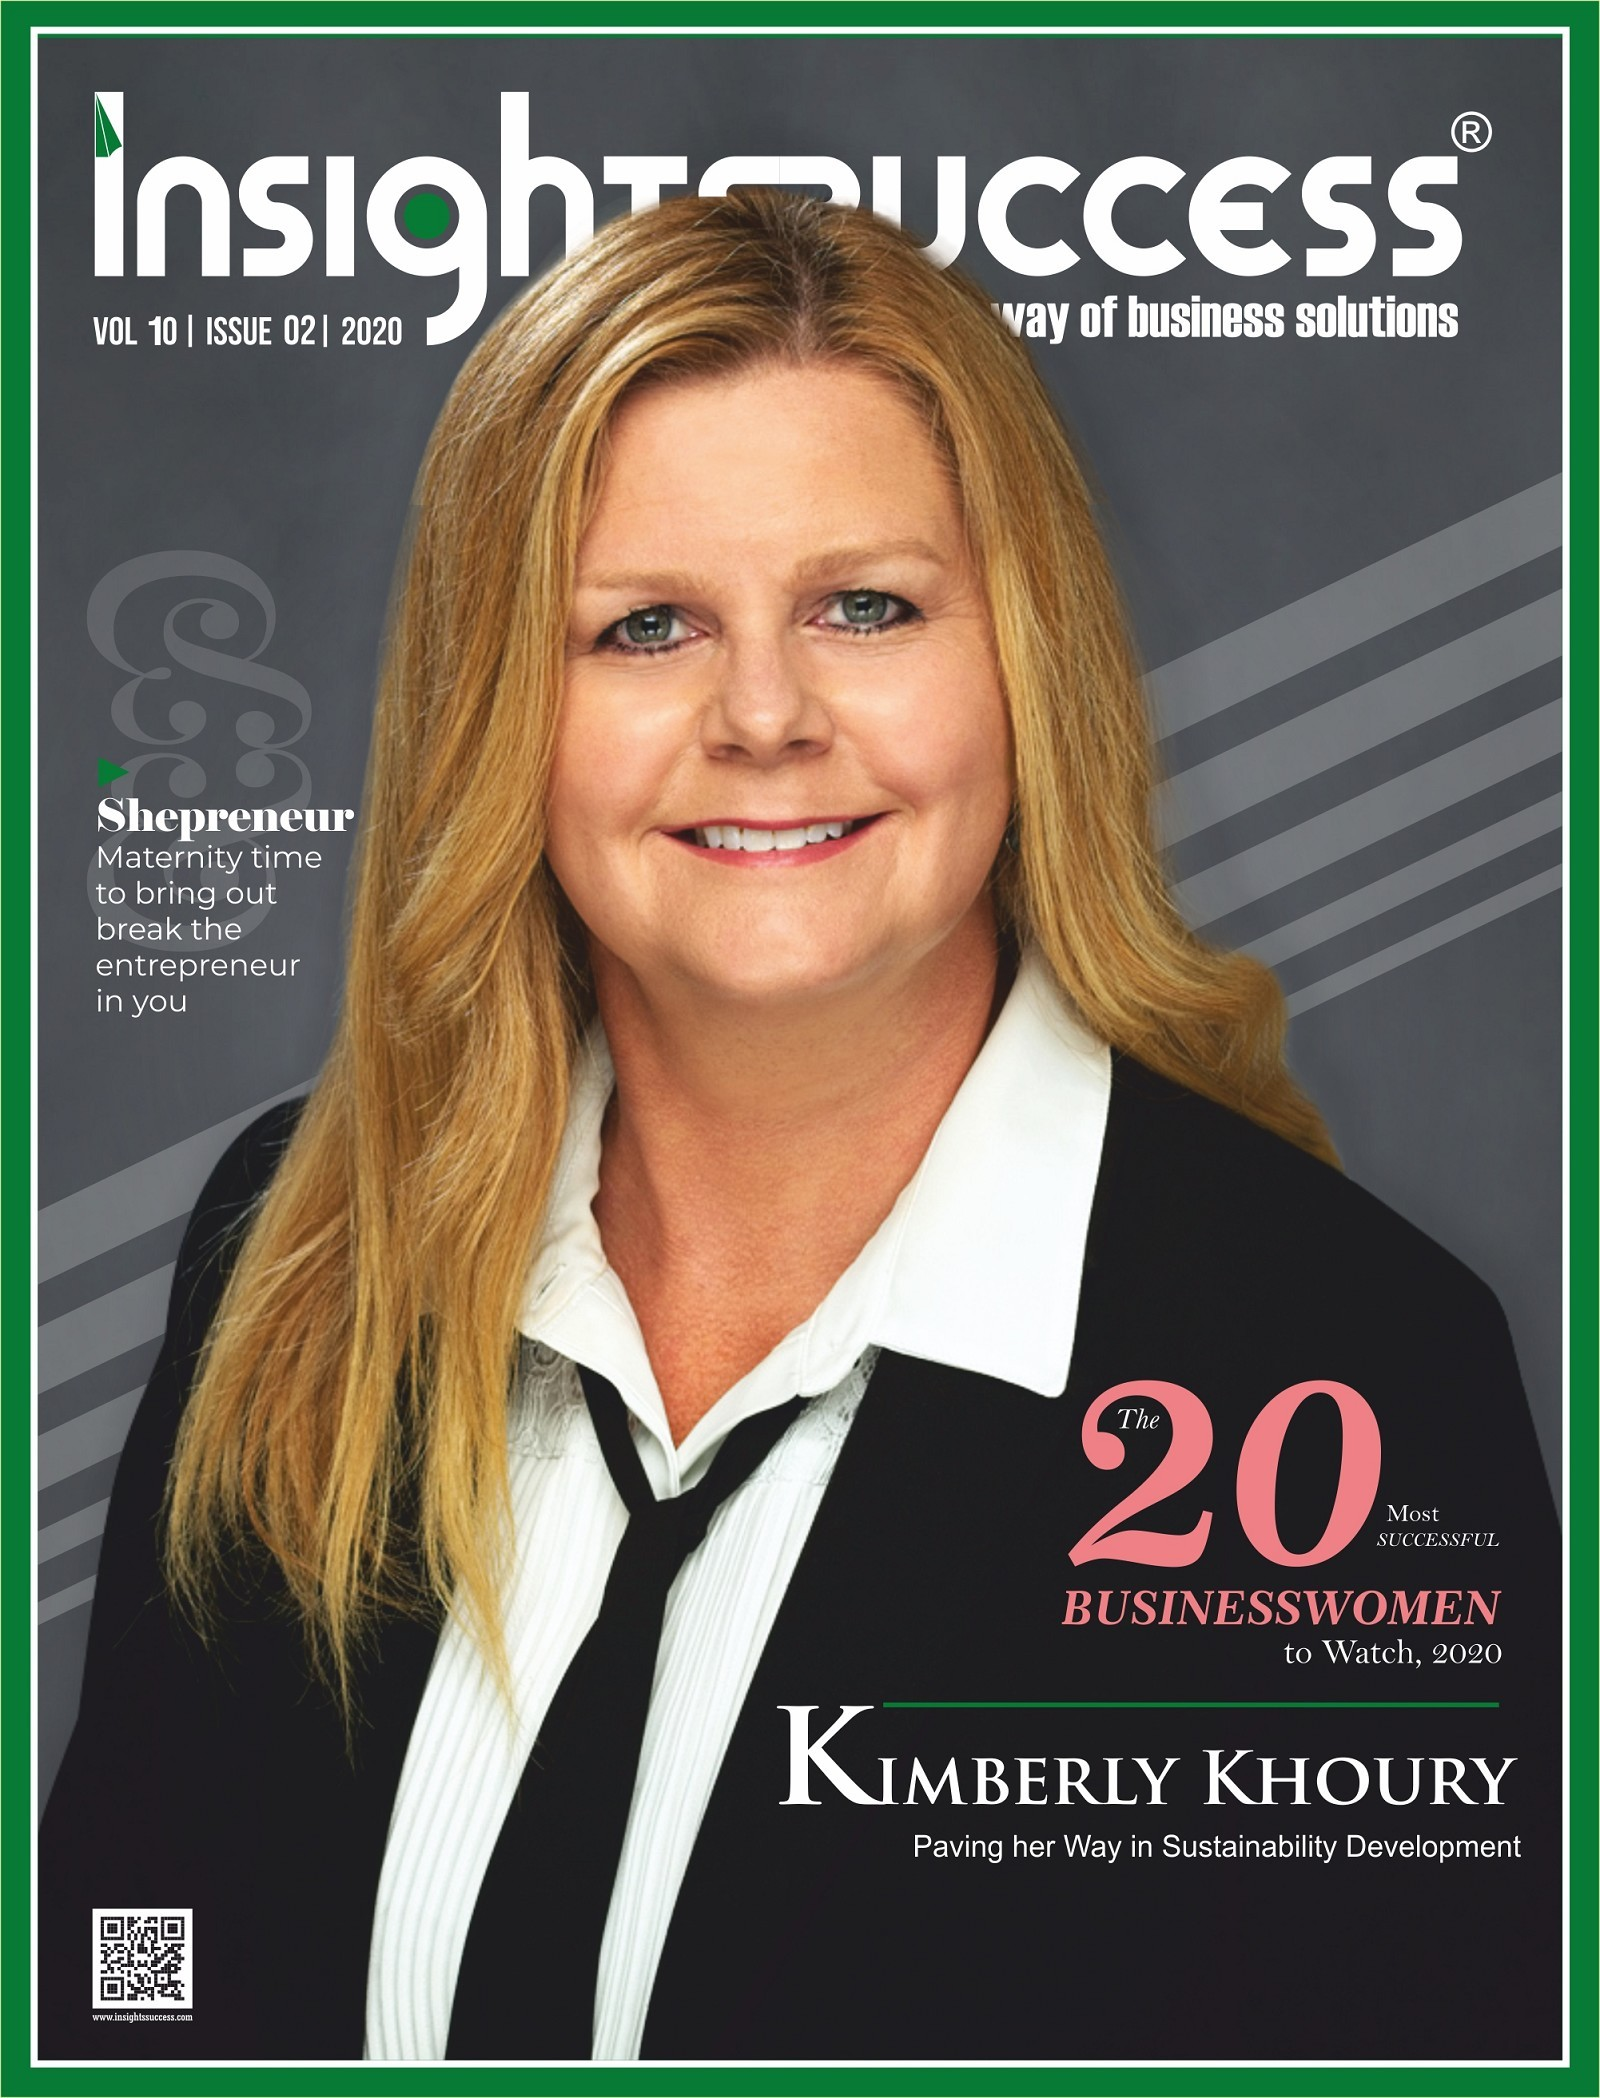 Kimberly Khoury: Paving her Way in Sustainability Development